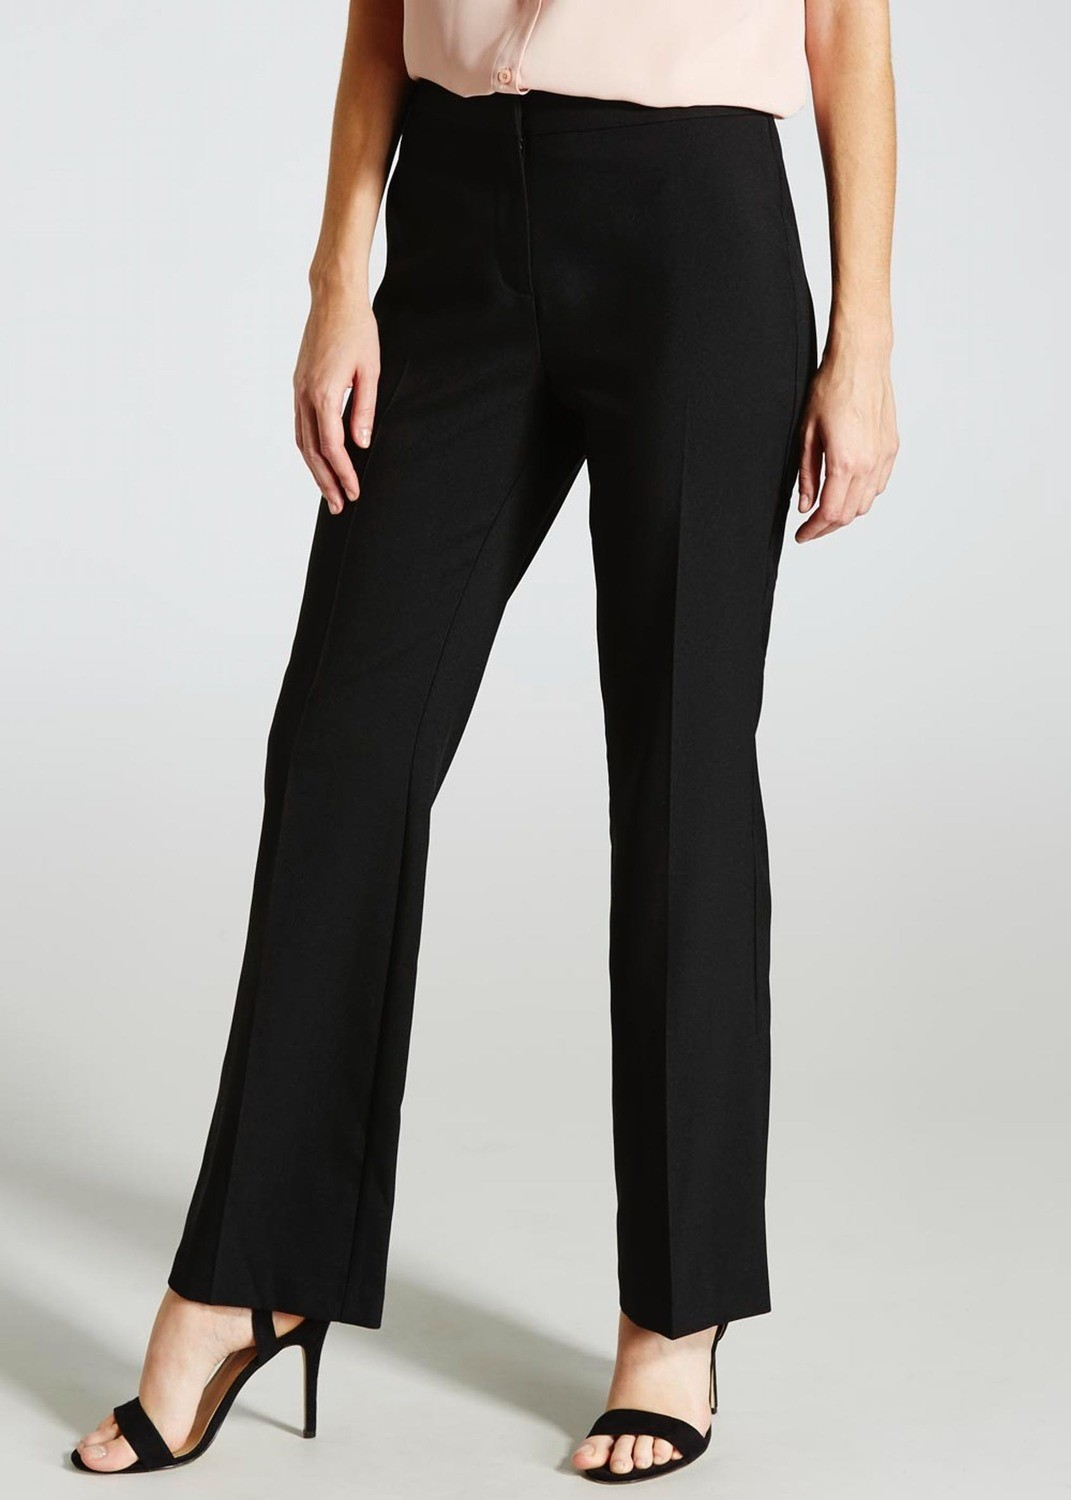 Bootcut Trousers (31 Inch Leg) Papaya